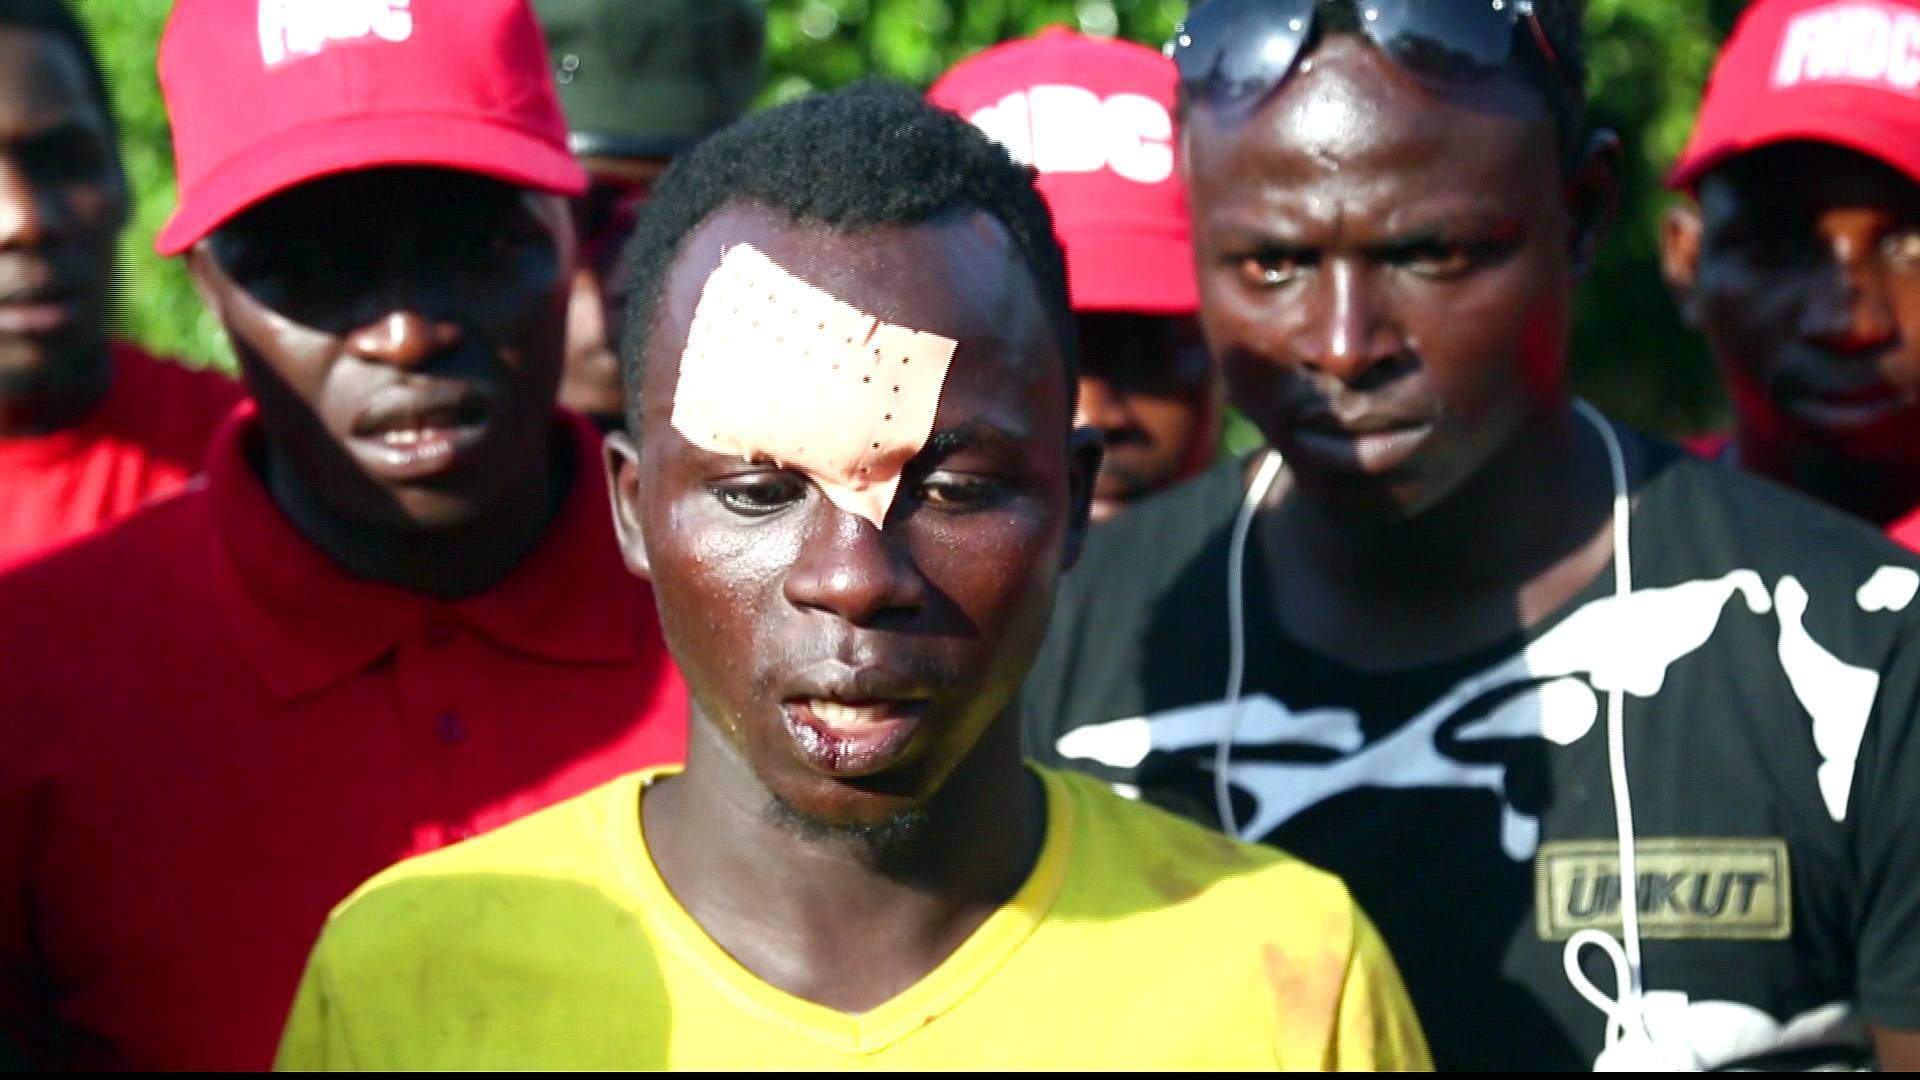 Guinea demonstrations: More violence in anti-government protests